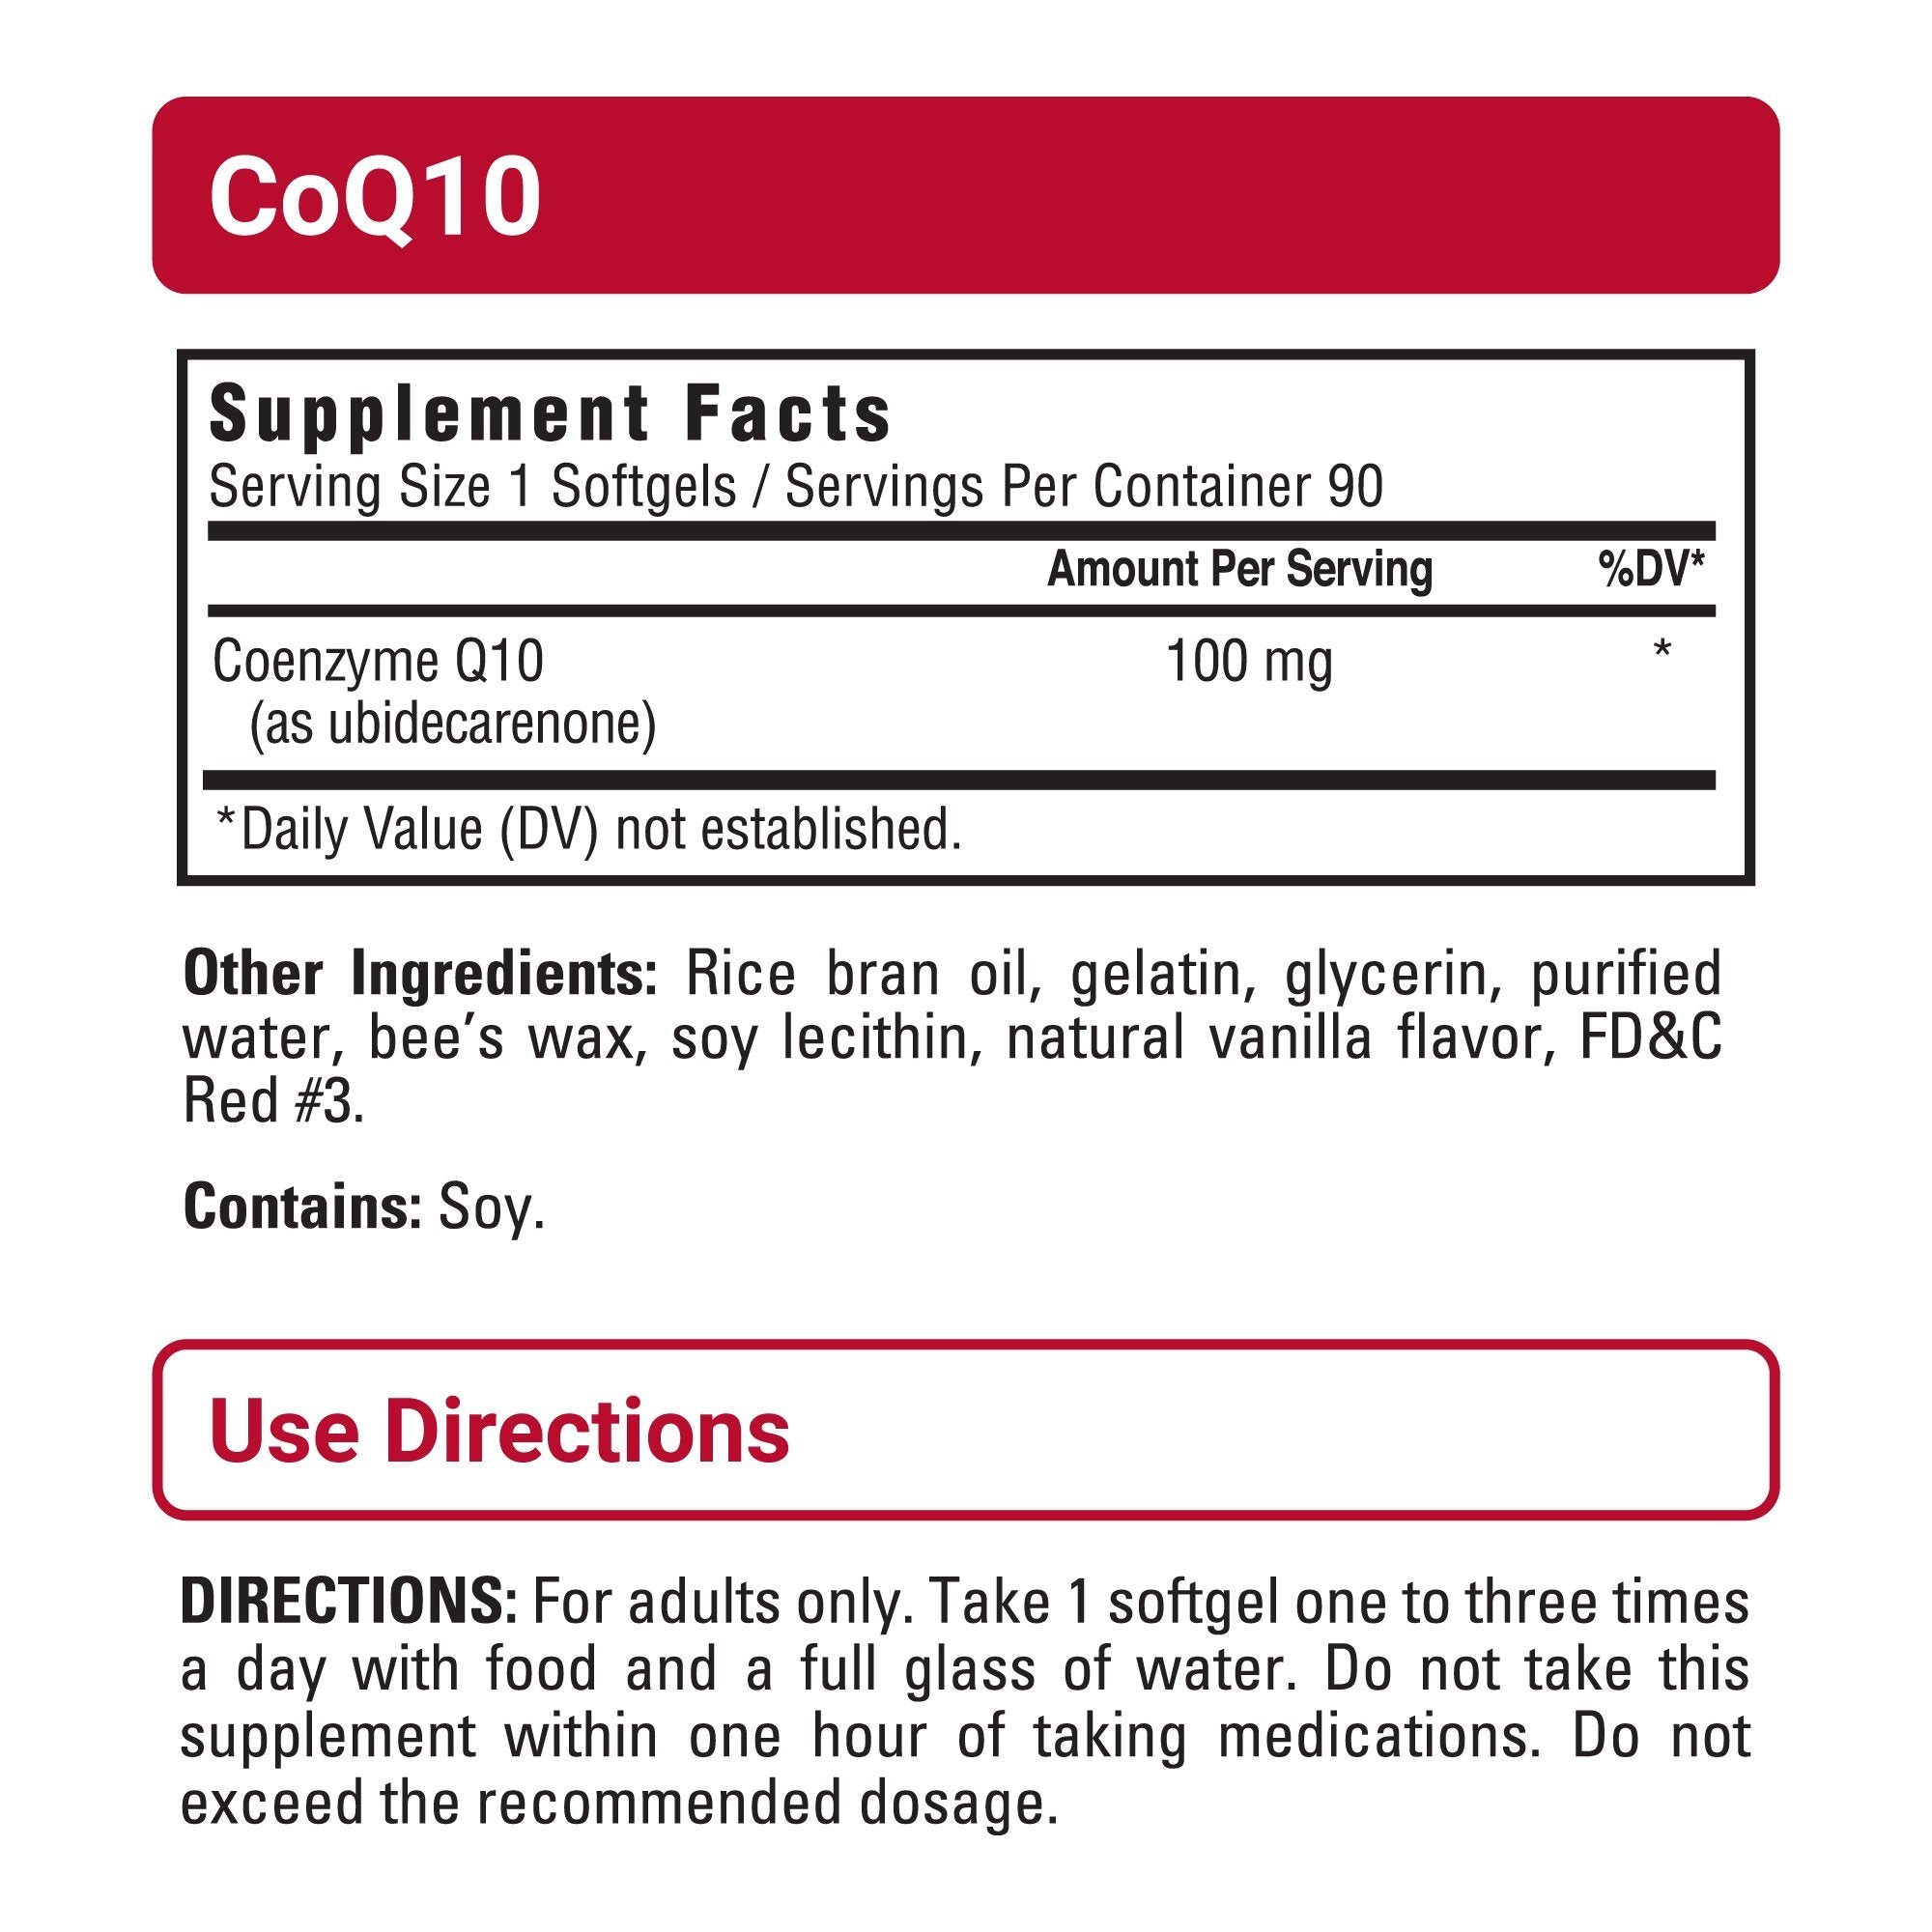 CoQ10 sup facts